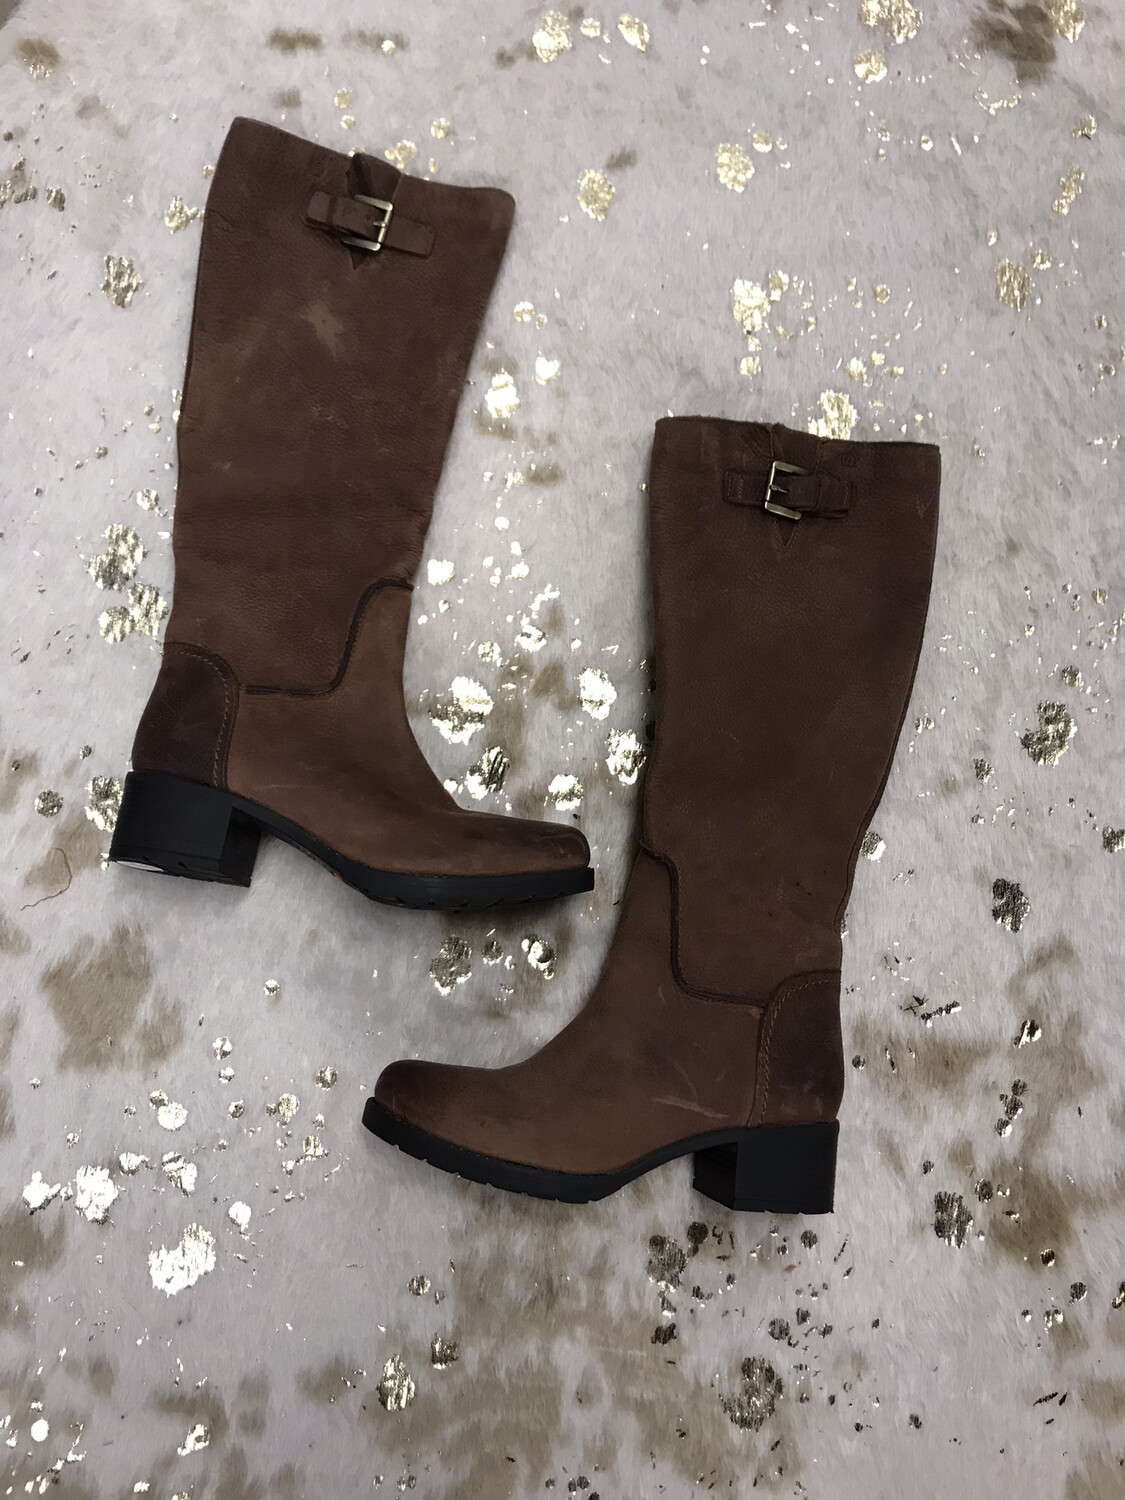 Rockport Brown Boots - Size 8.5